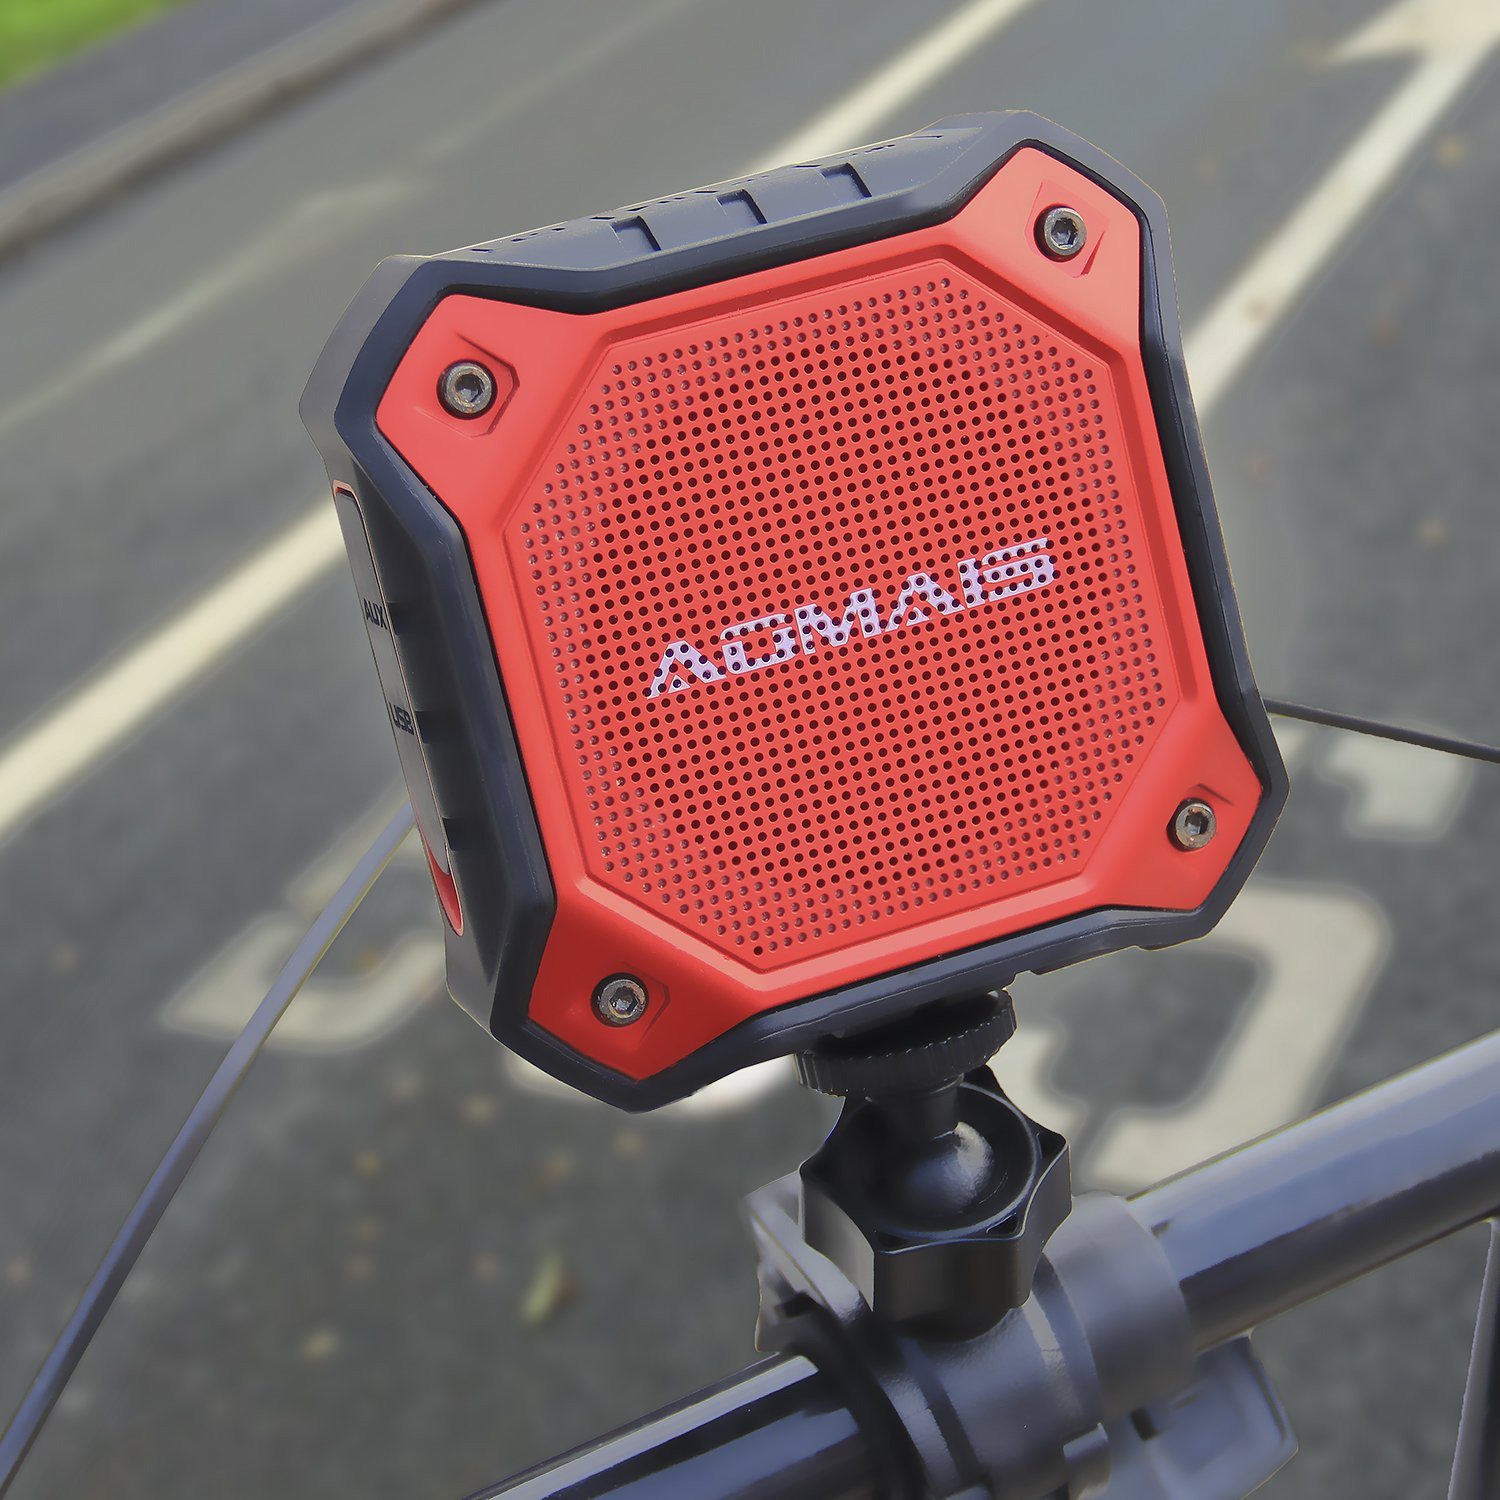 AOMAIS Ultra Portable Wireless Bluetooth Speakers 8W Loud Sound, Waterproof IPX7 Shower Speaker,Stereo Pairing Home Party, Outdoor, Beach, Travel (Red) by AOMAIS (Image #7)